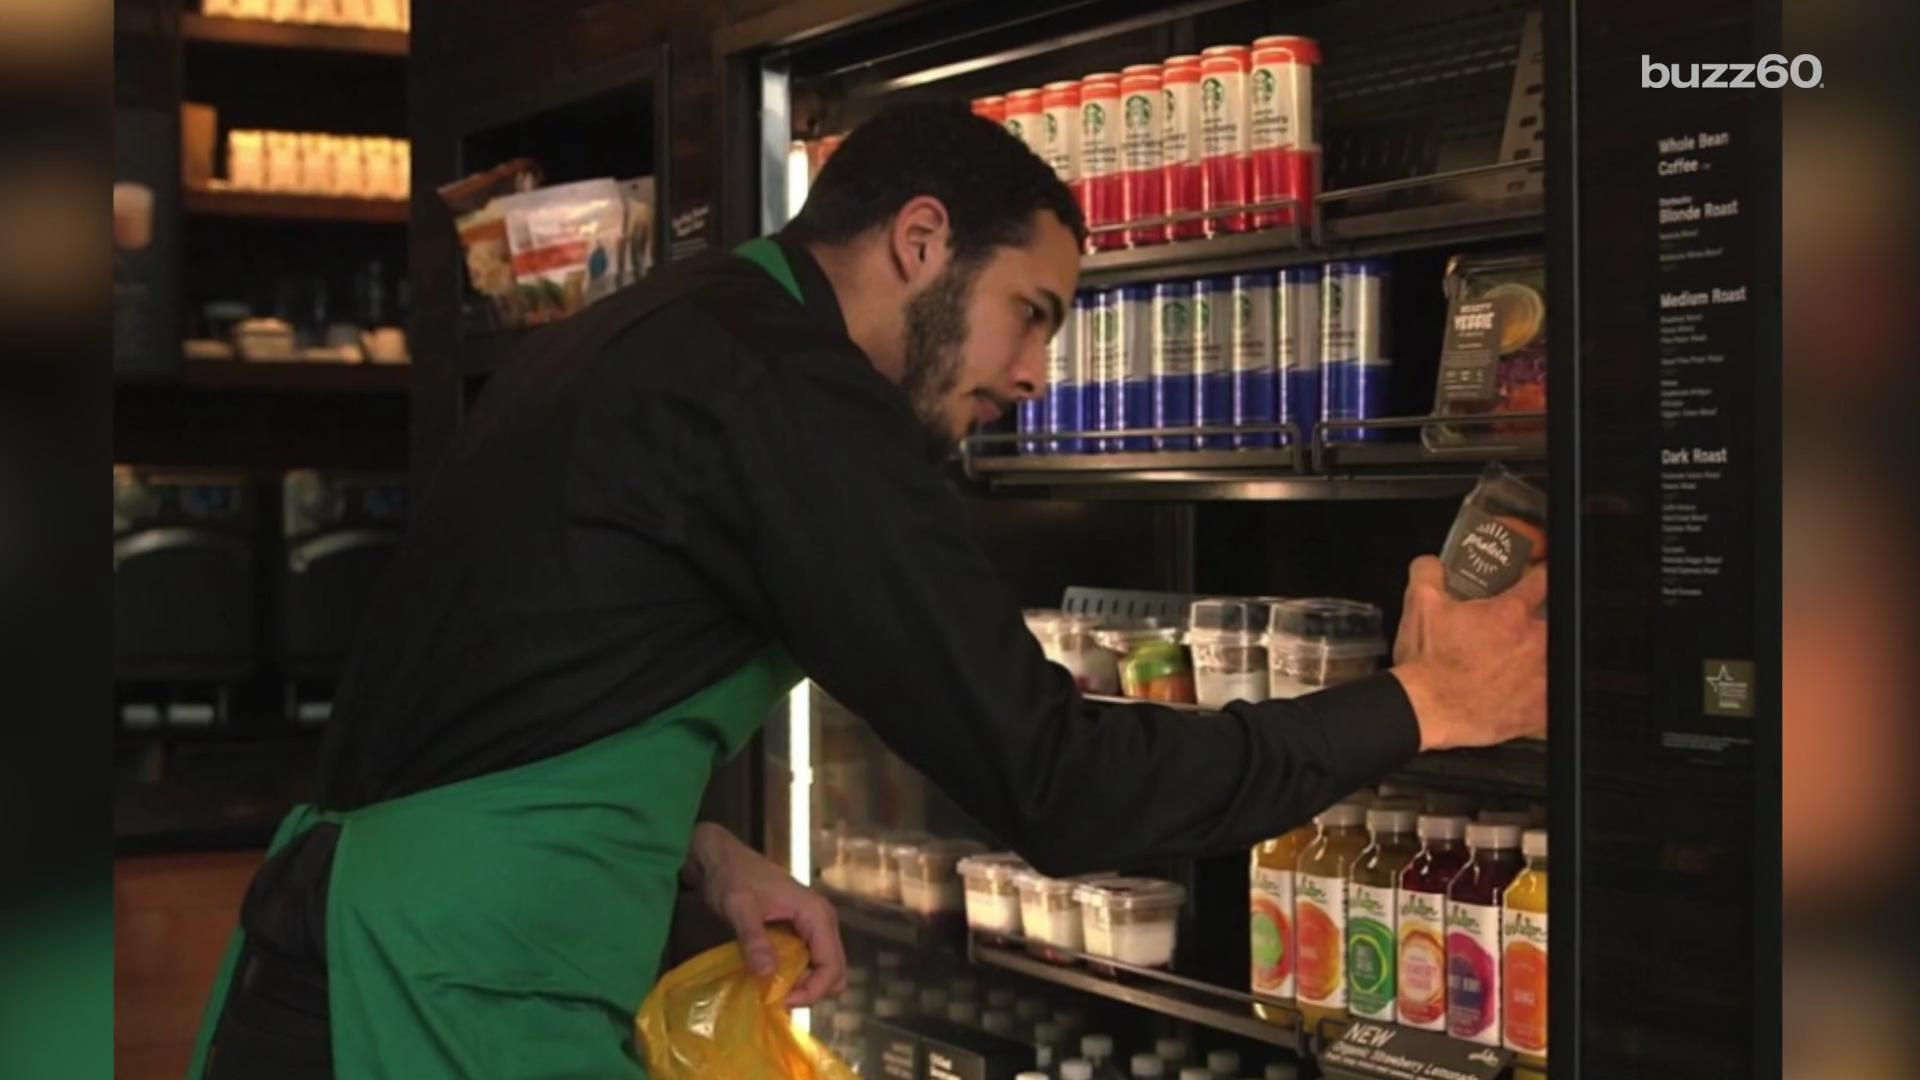 Starbucks Is Doing Something Different with Their Leftover Food